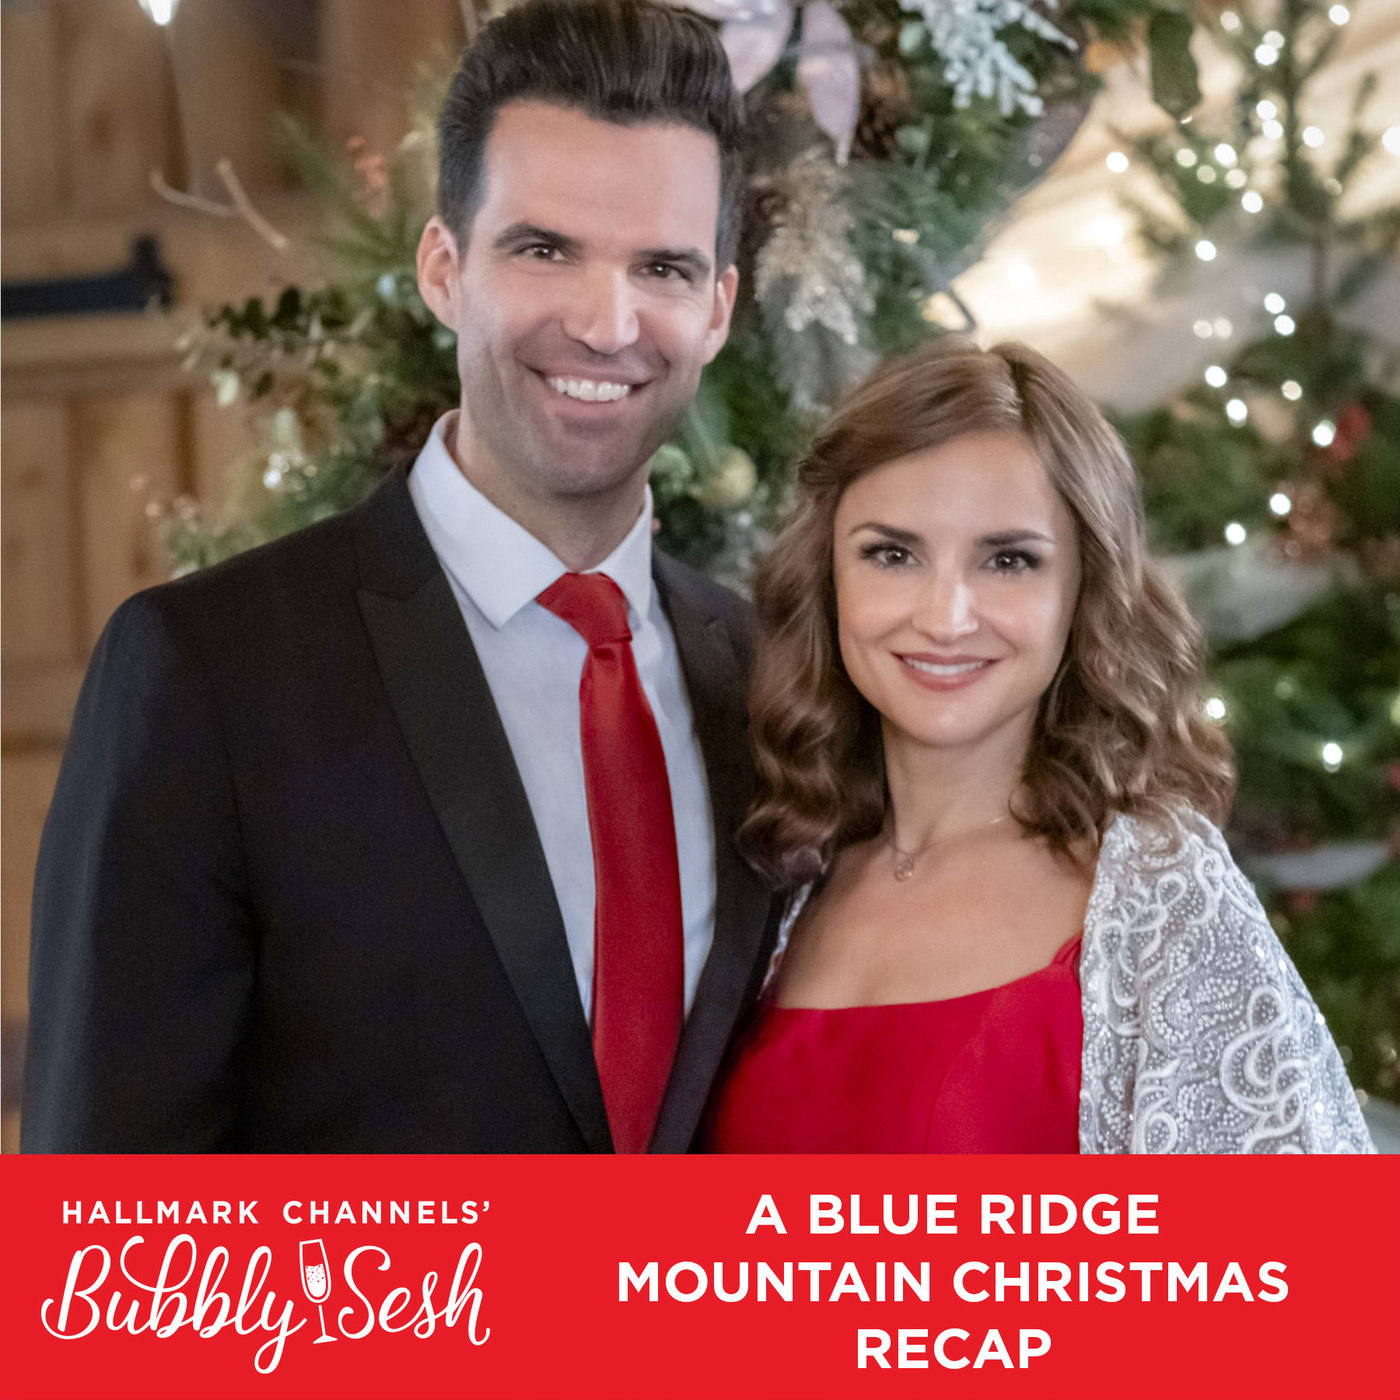 A Blue Ridge Mountain Christmas Recap